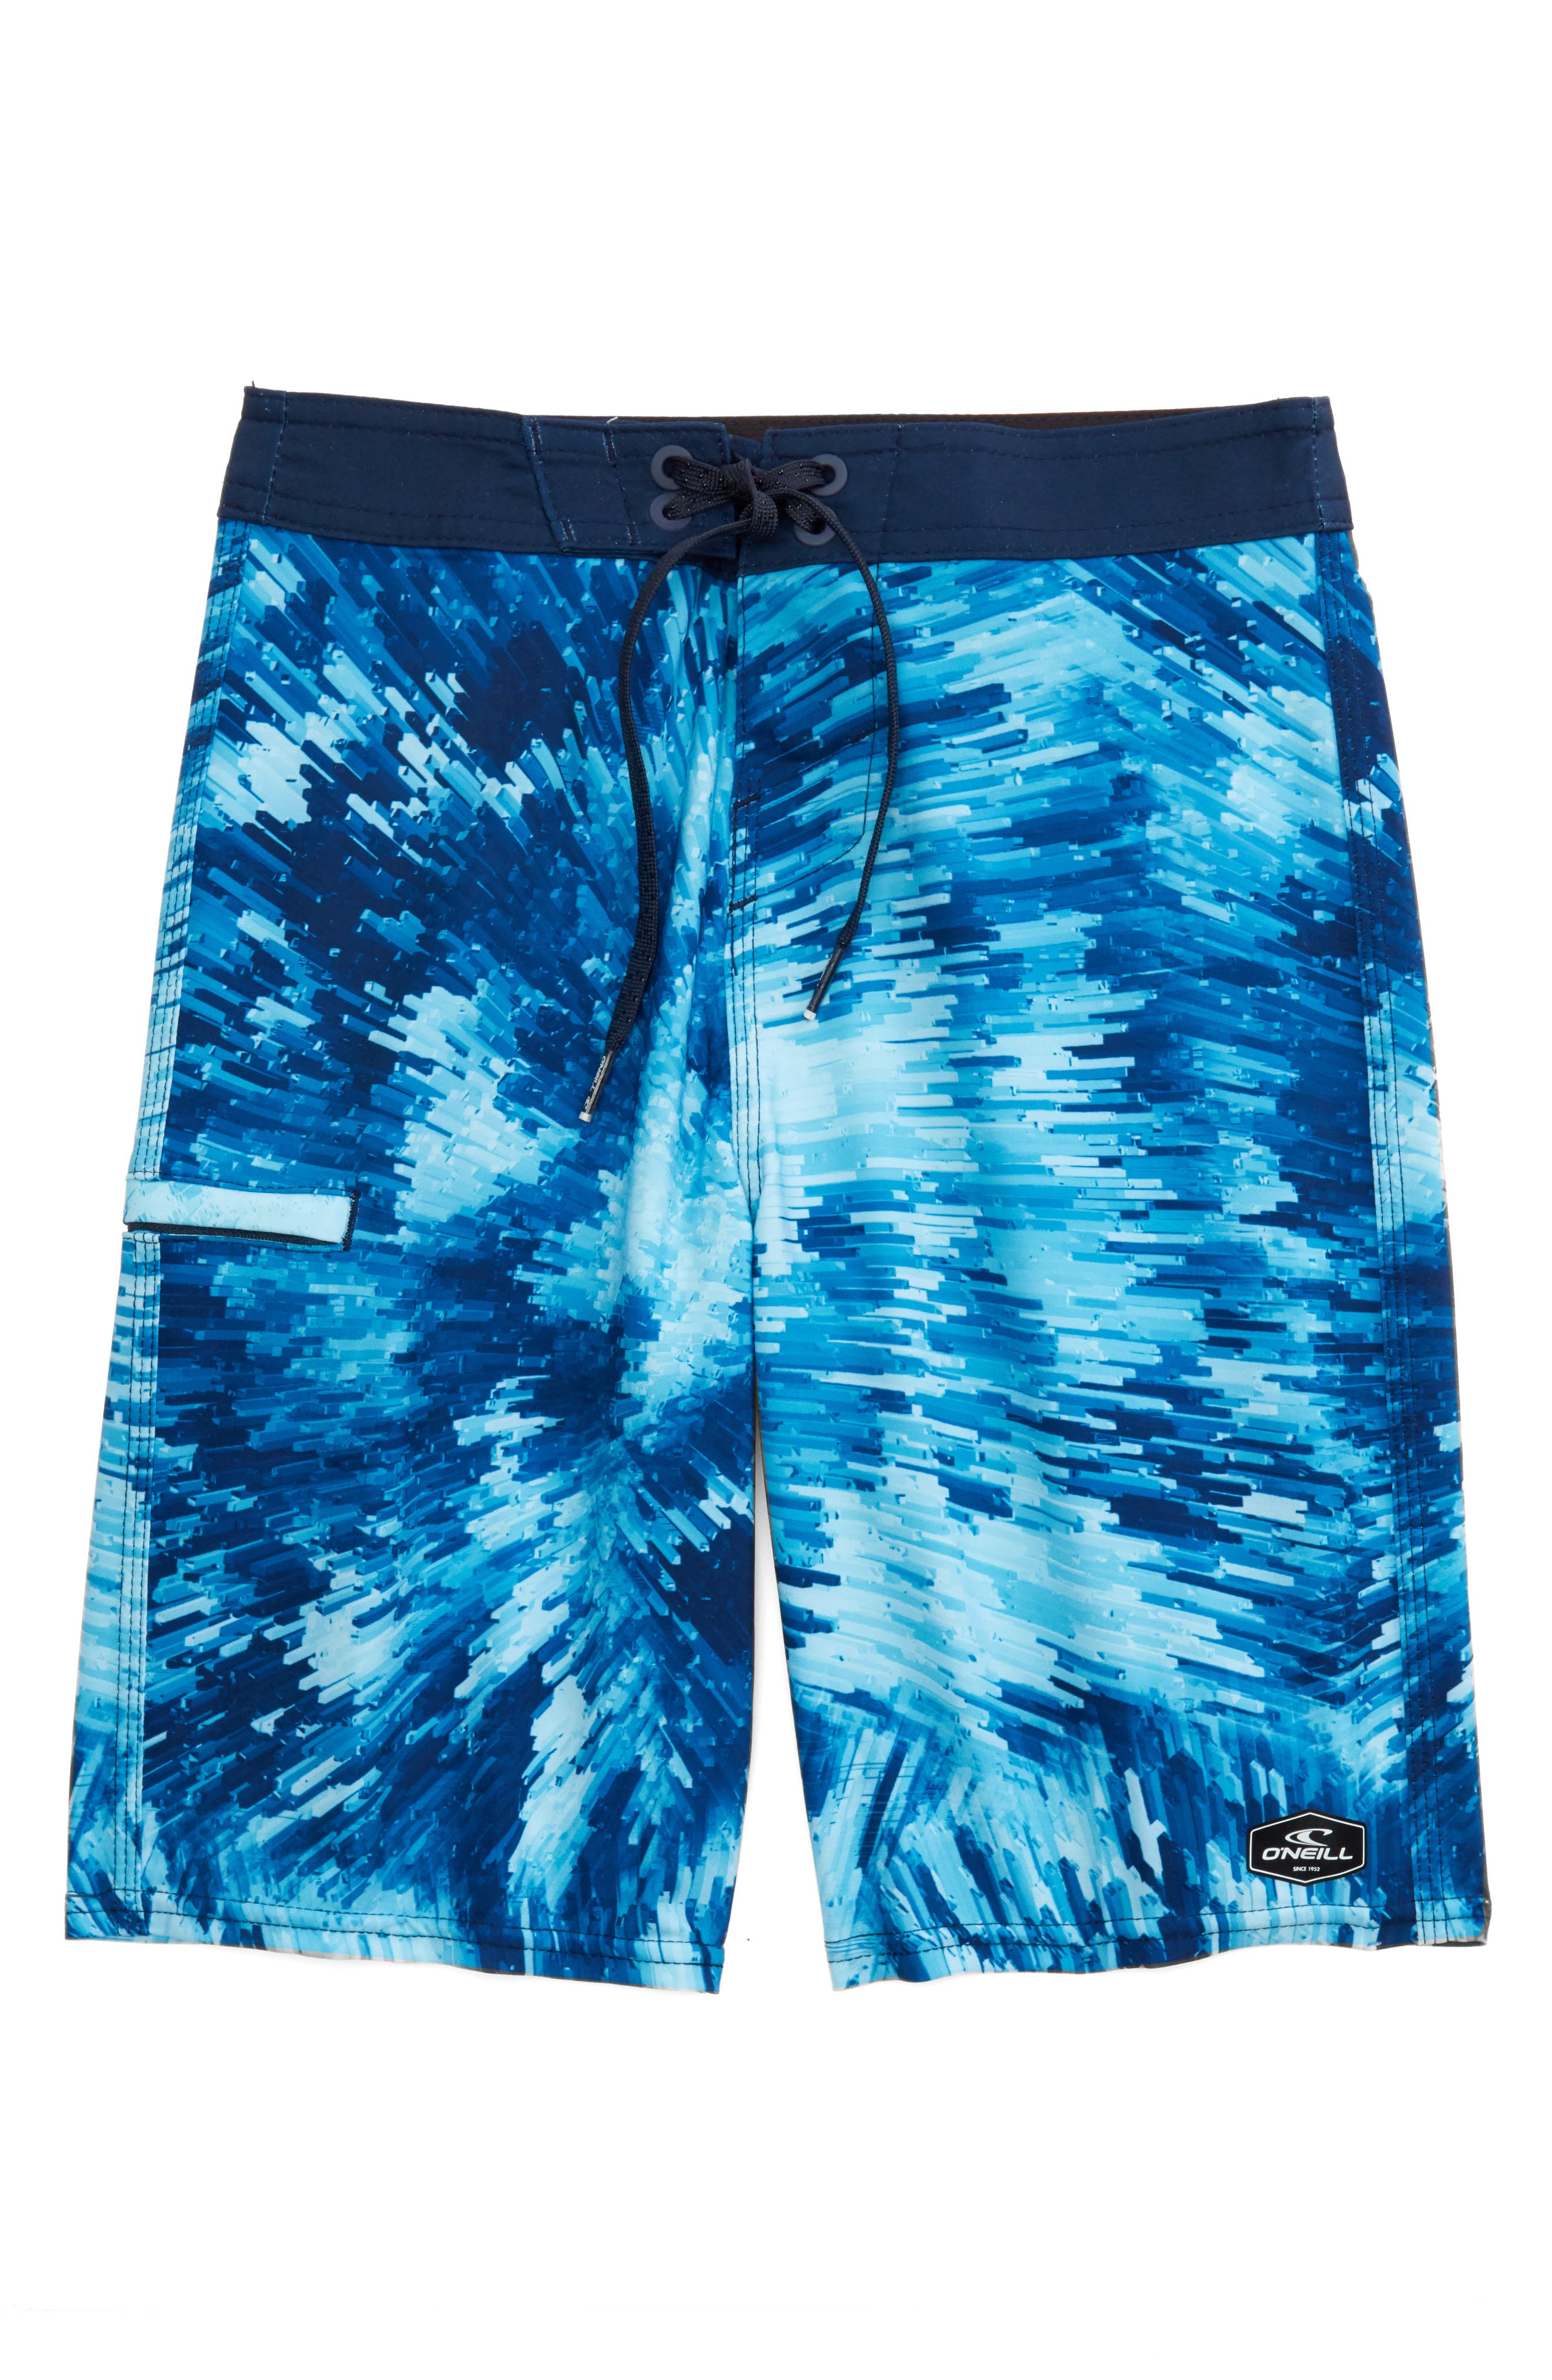 Hyperfreak Crystalize Board Shorts,                         Main,                         color, 400